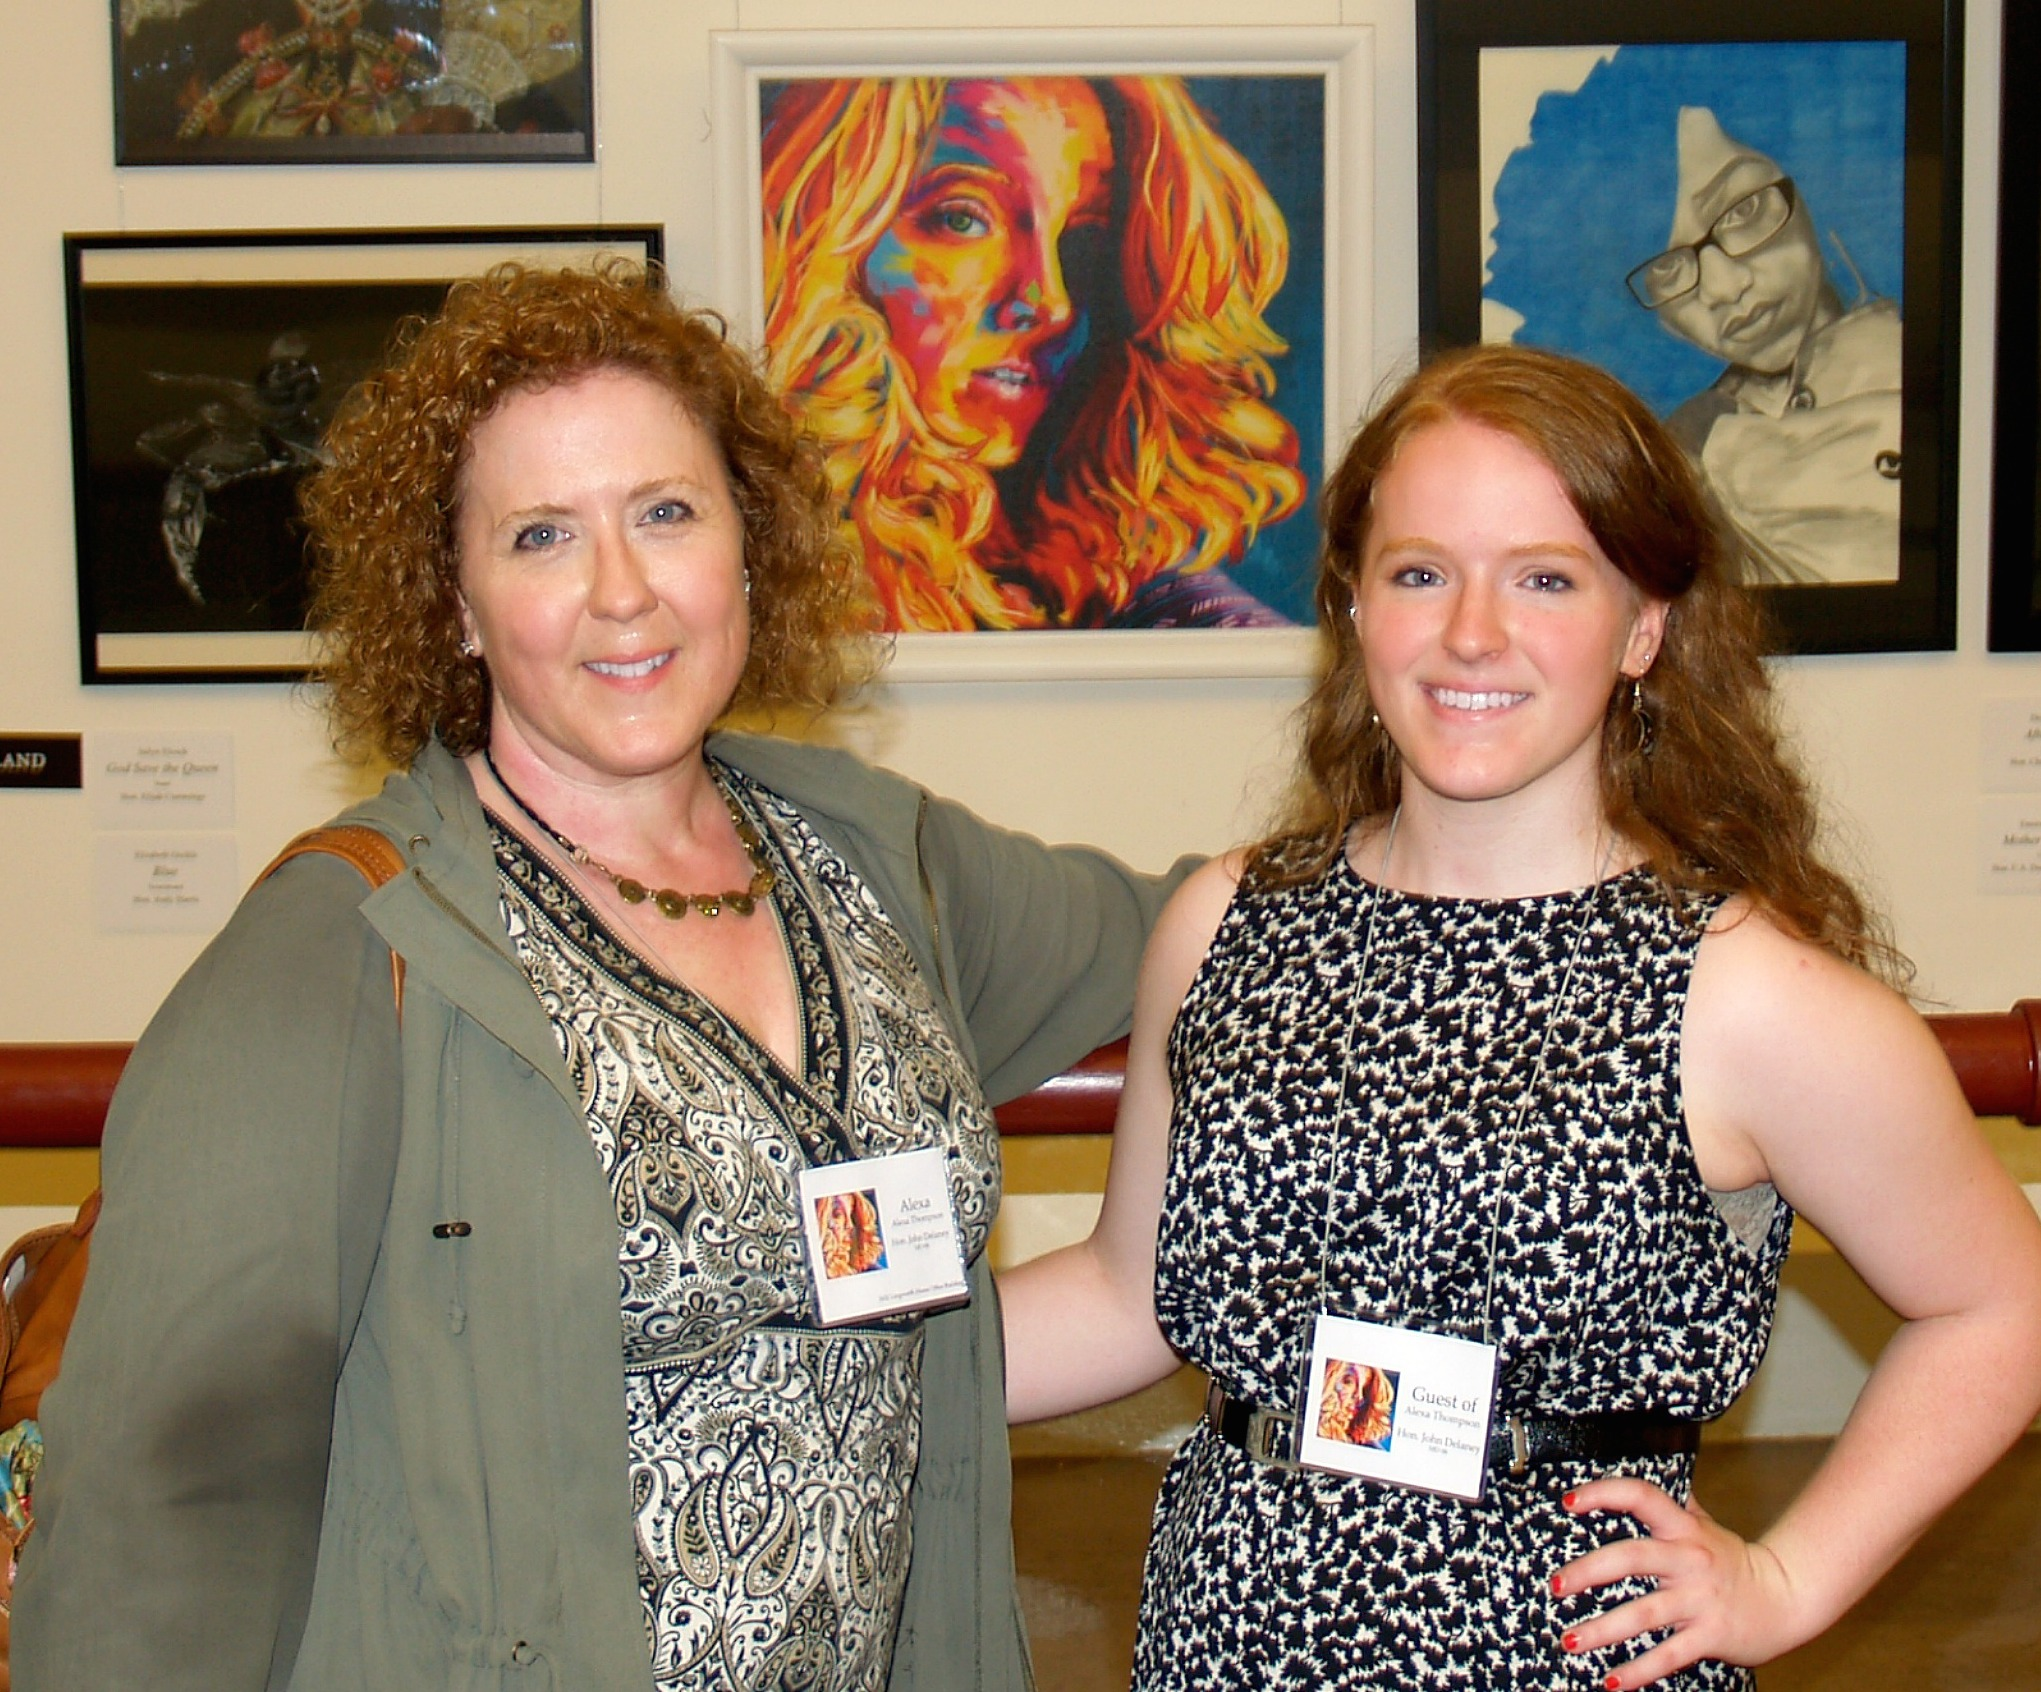 Alexa Thompson poses with her mother and her winning portrait in the U.S. Capitol.